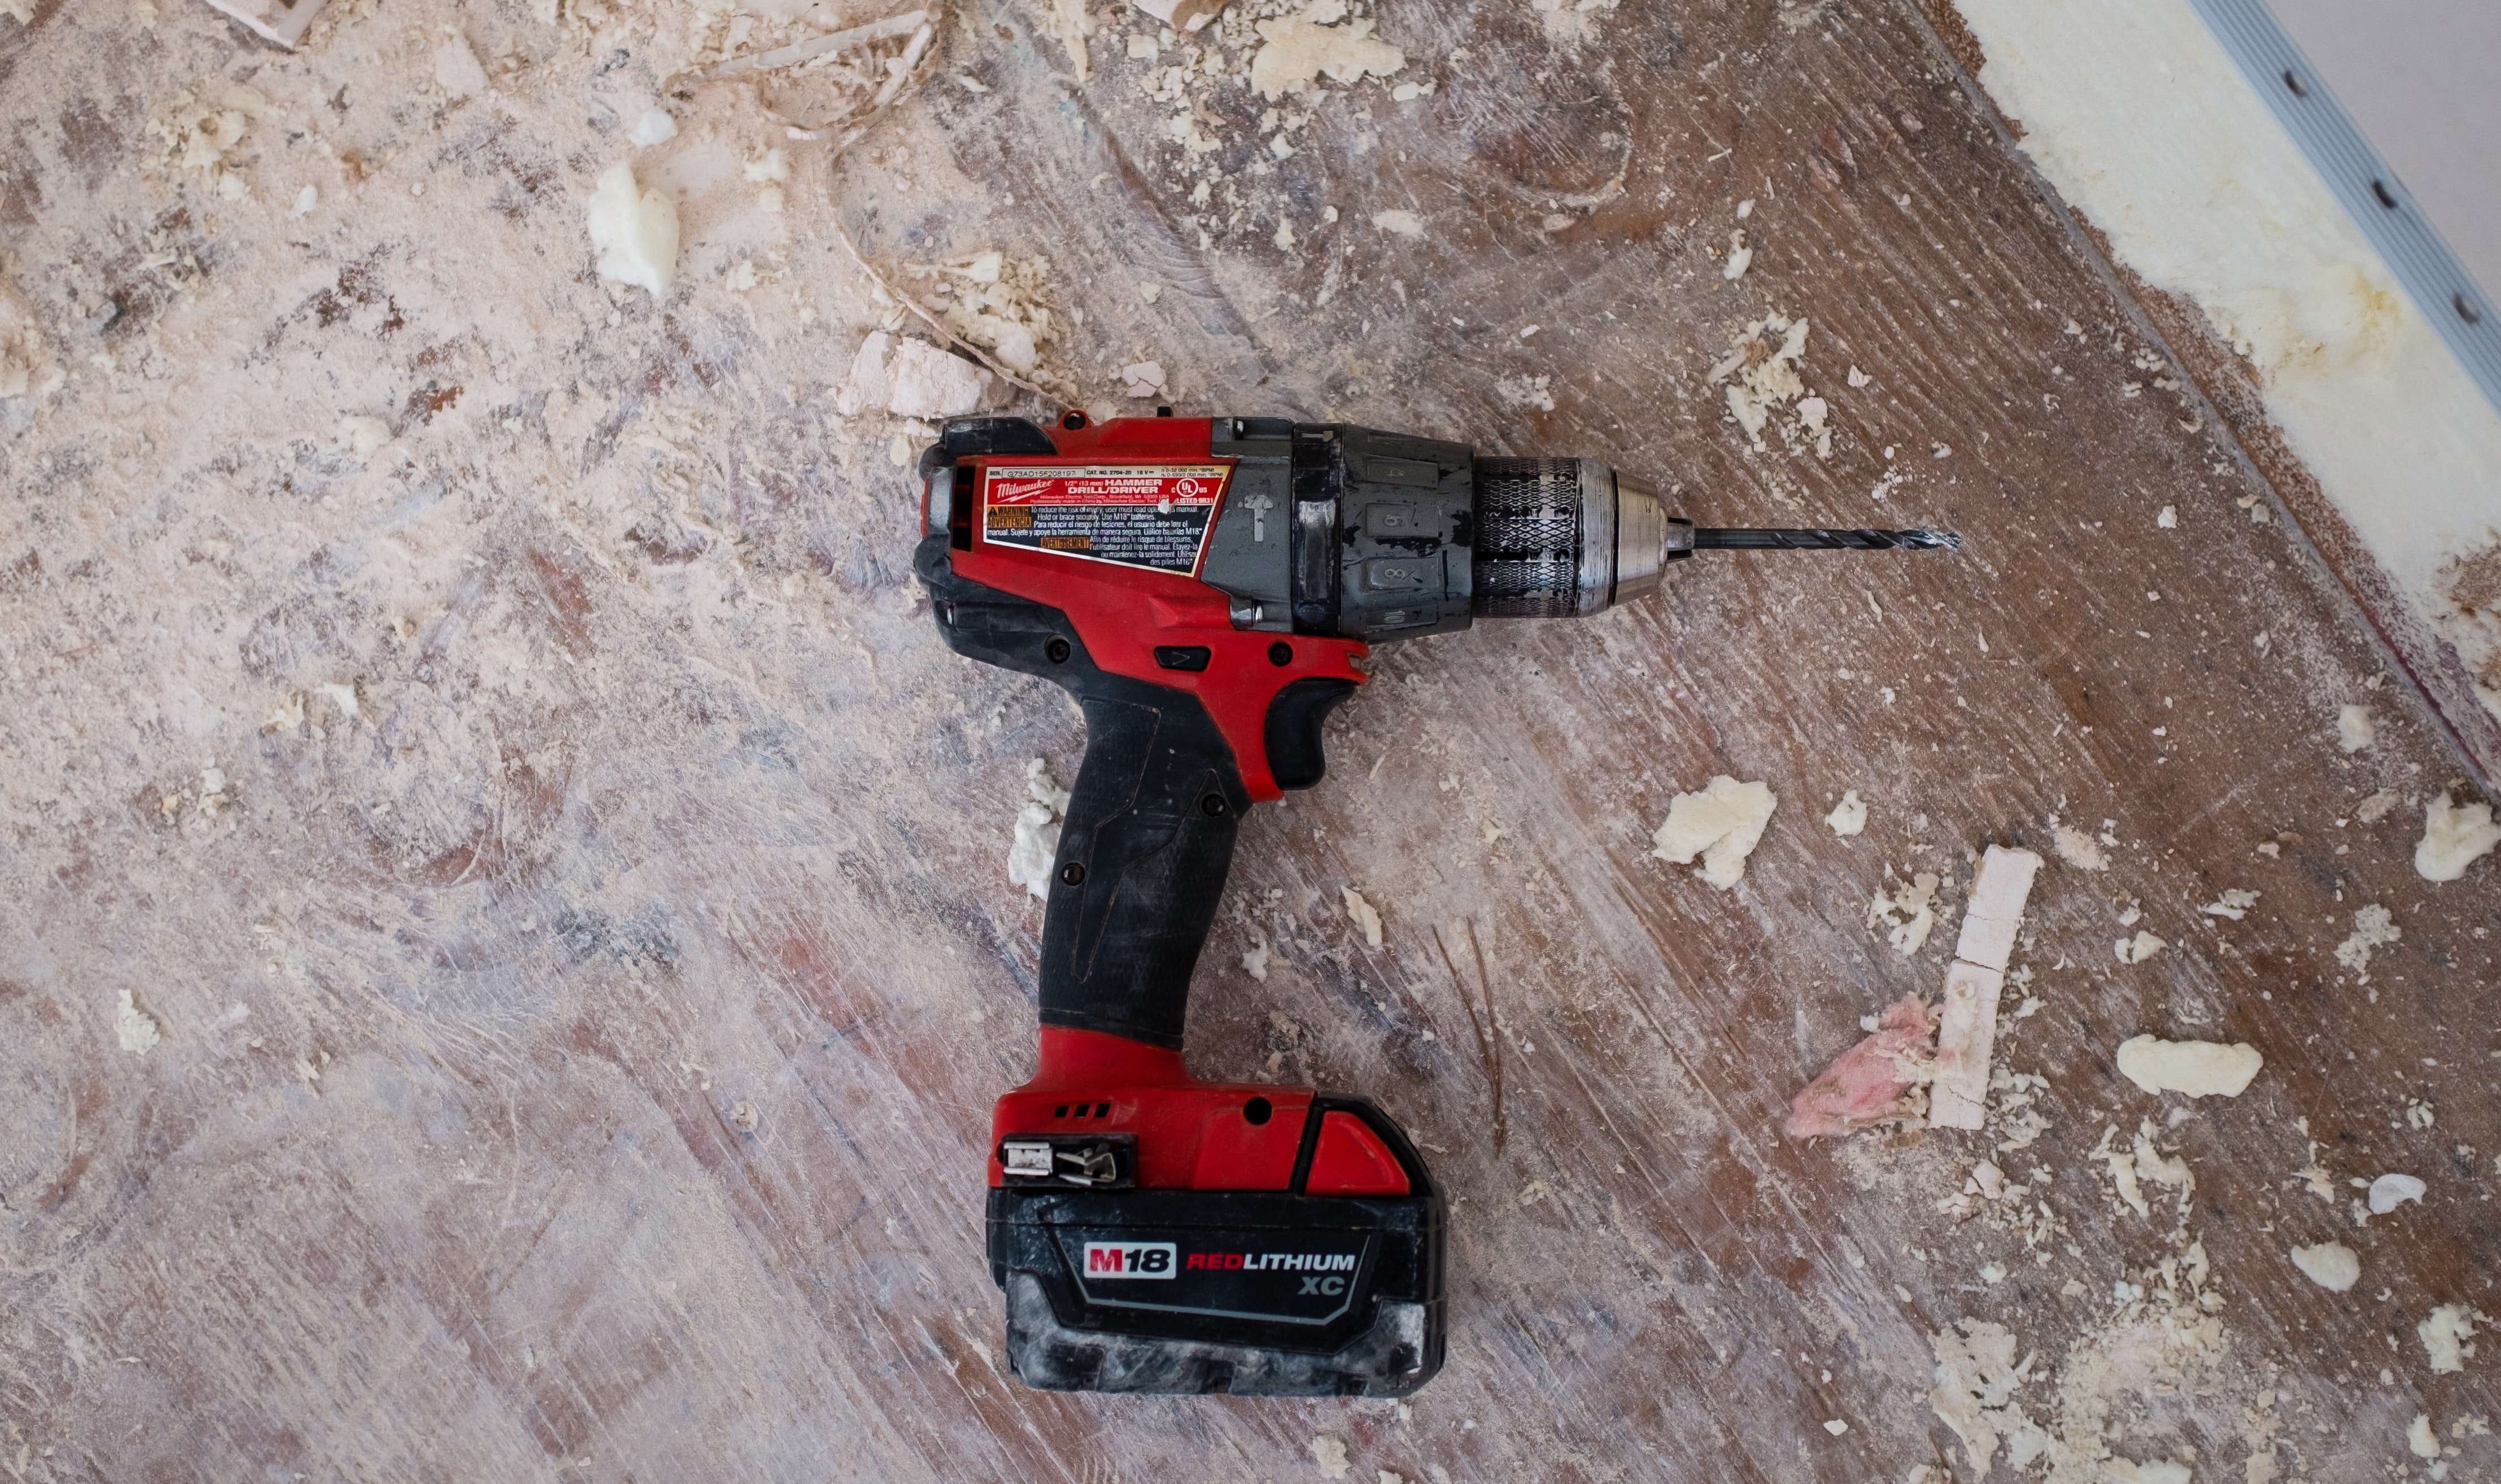 power tool purchasing through online marketplace